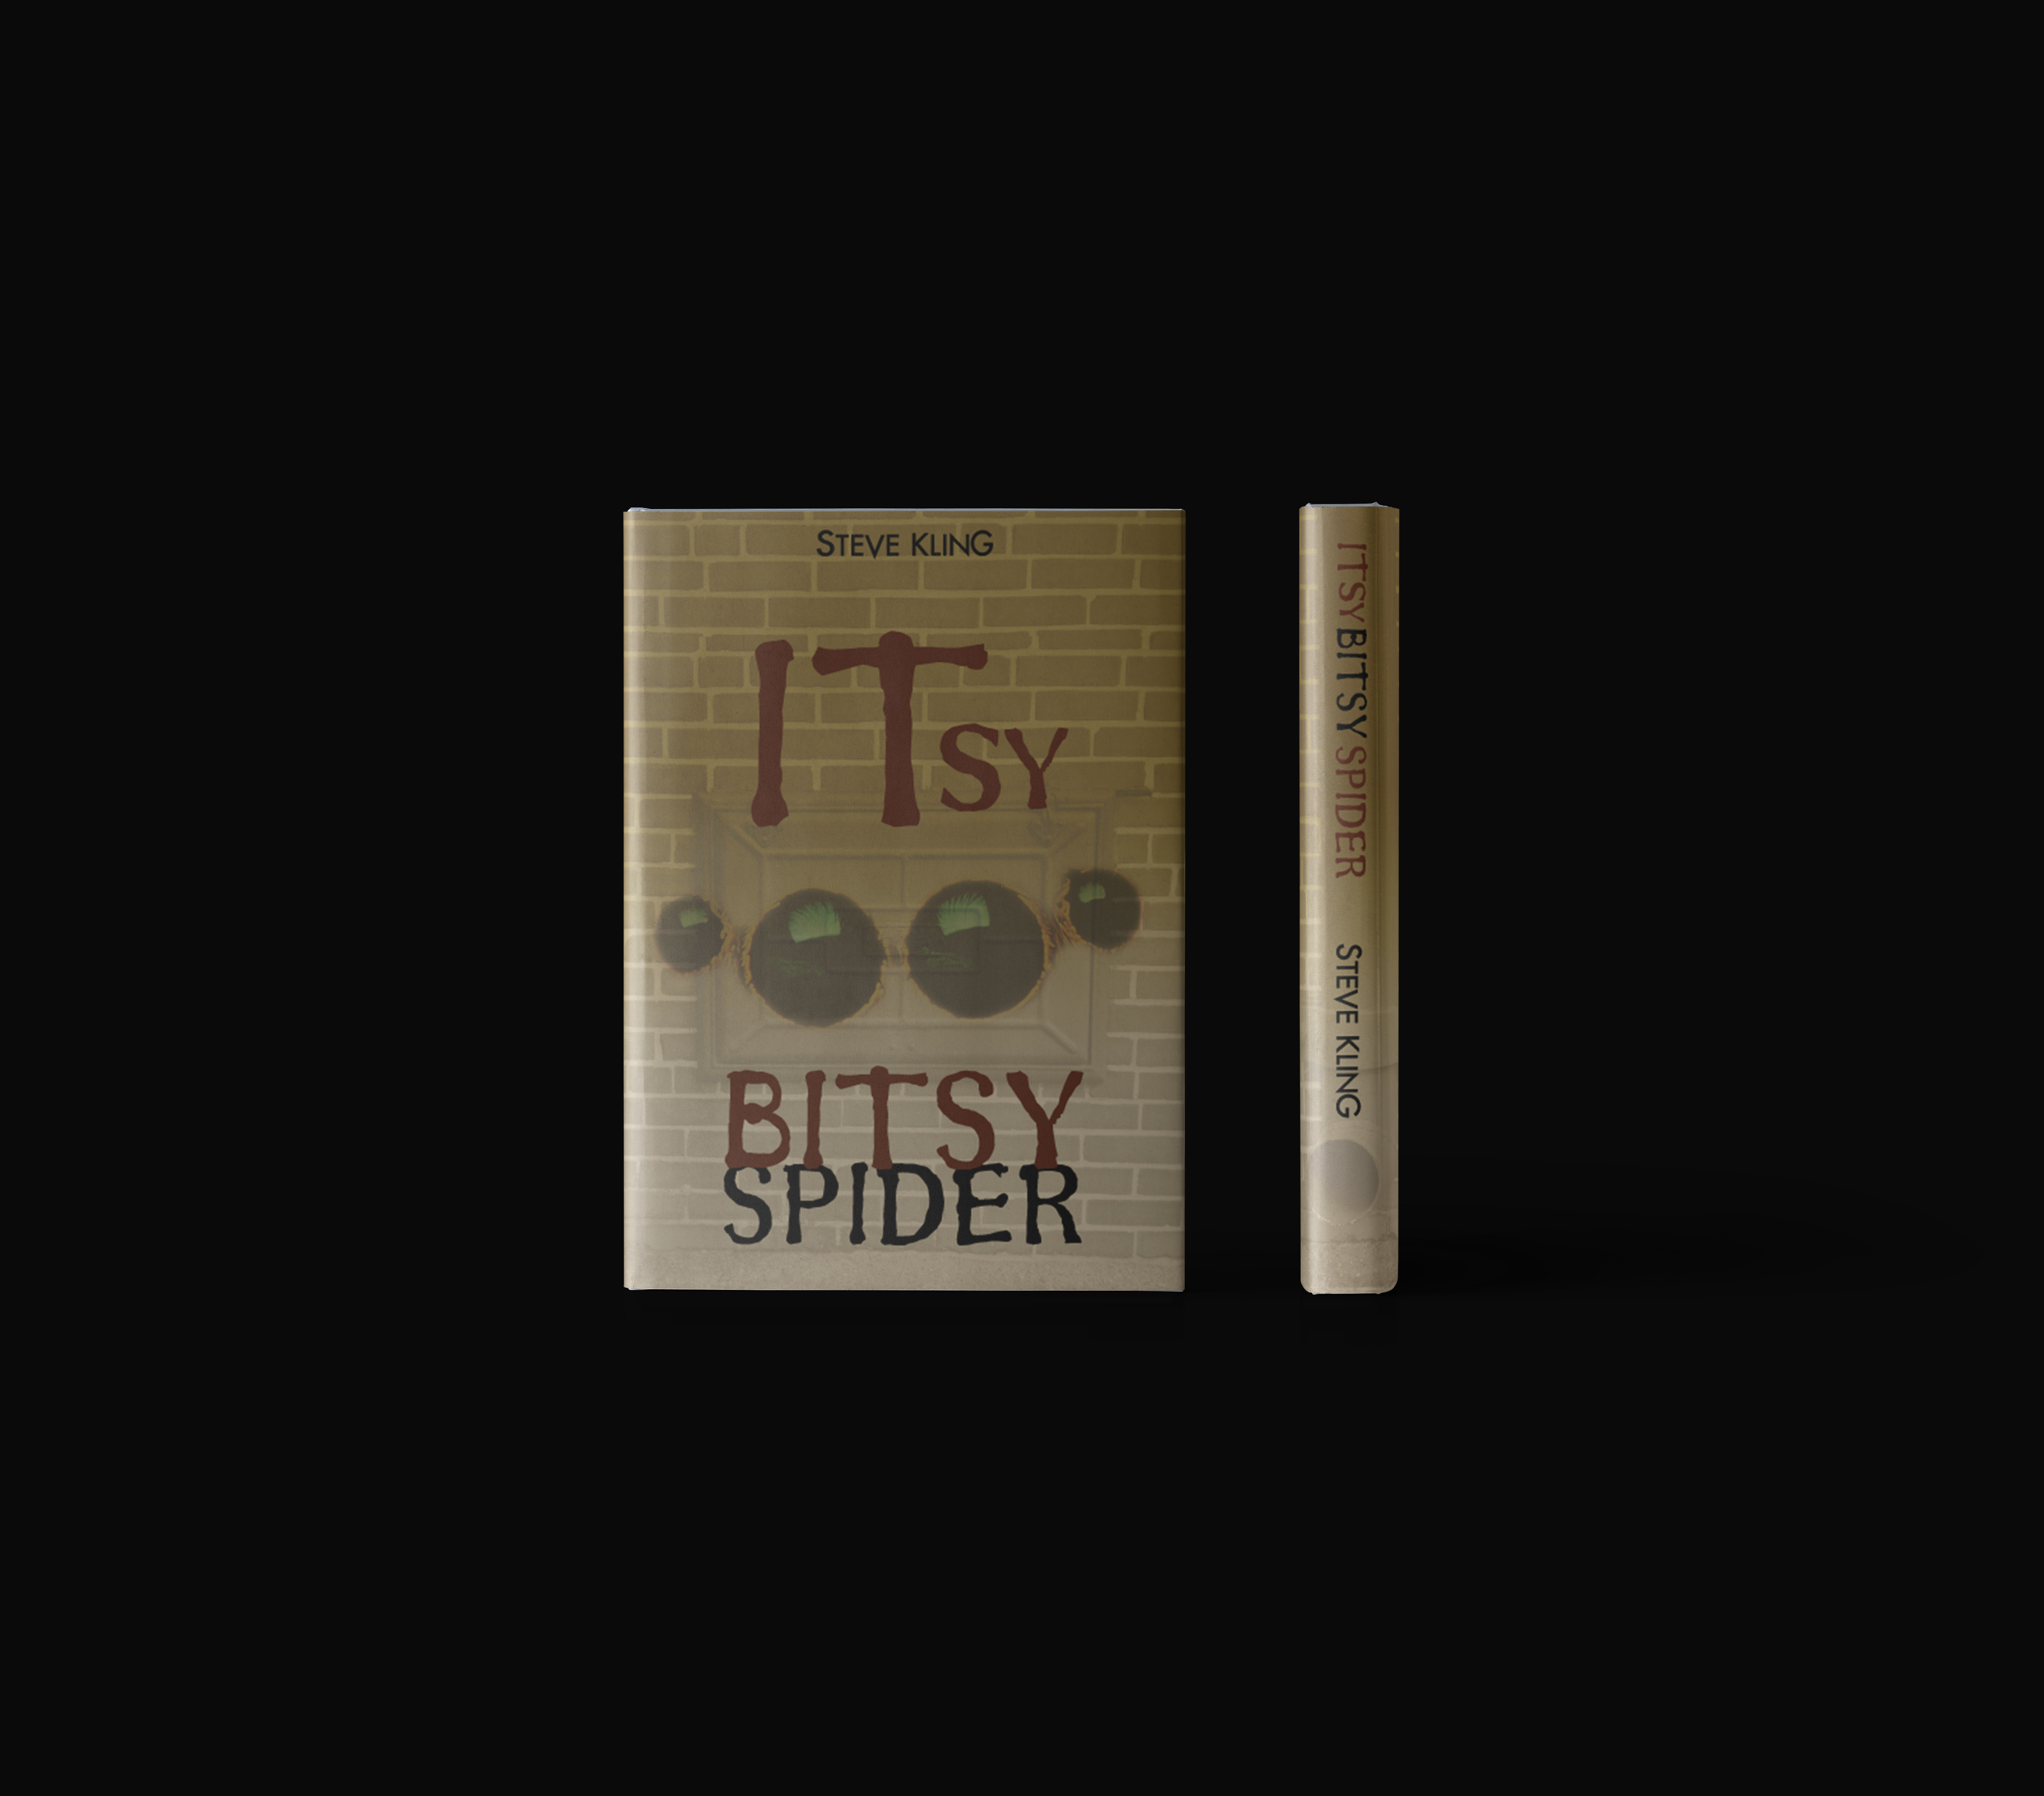 Steve Kling book cover for Itsy Bitsy Spider presented as dust jacket